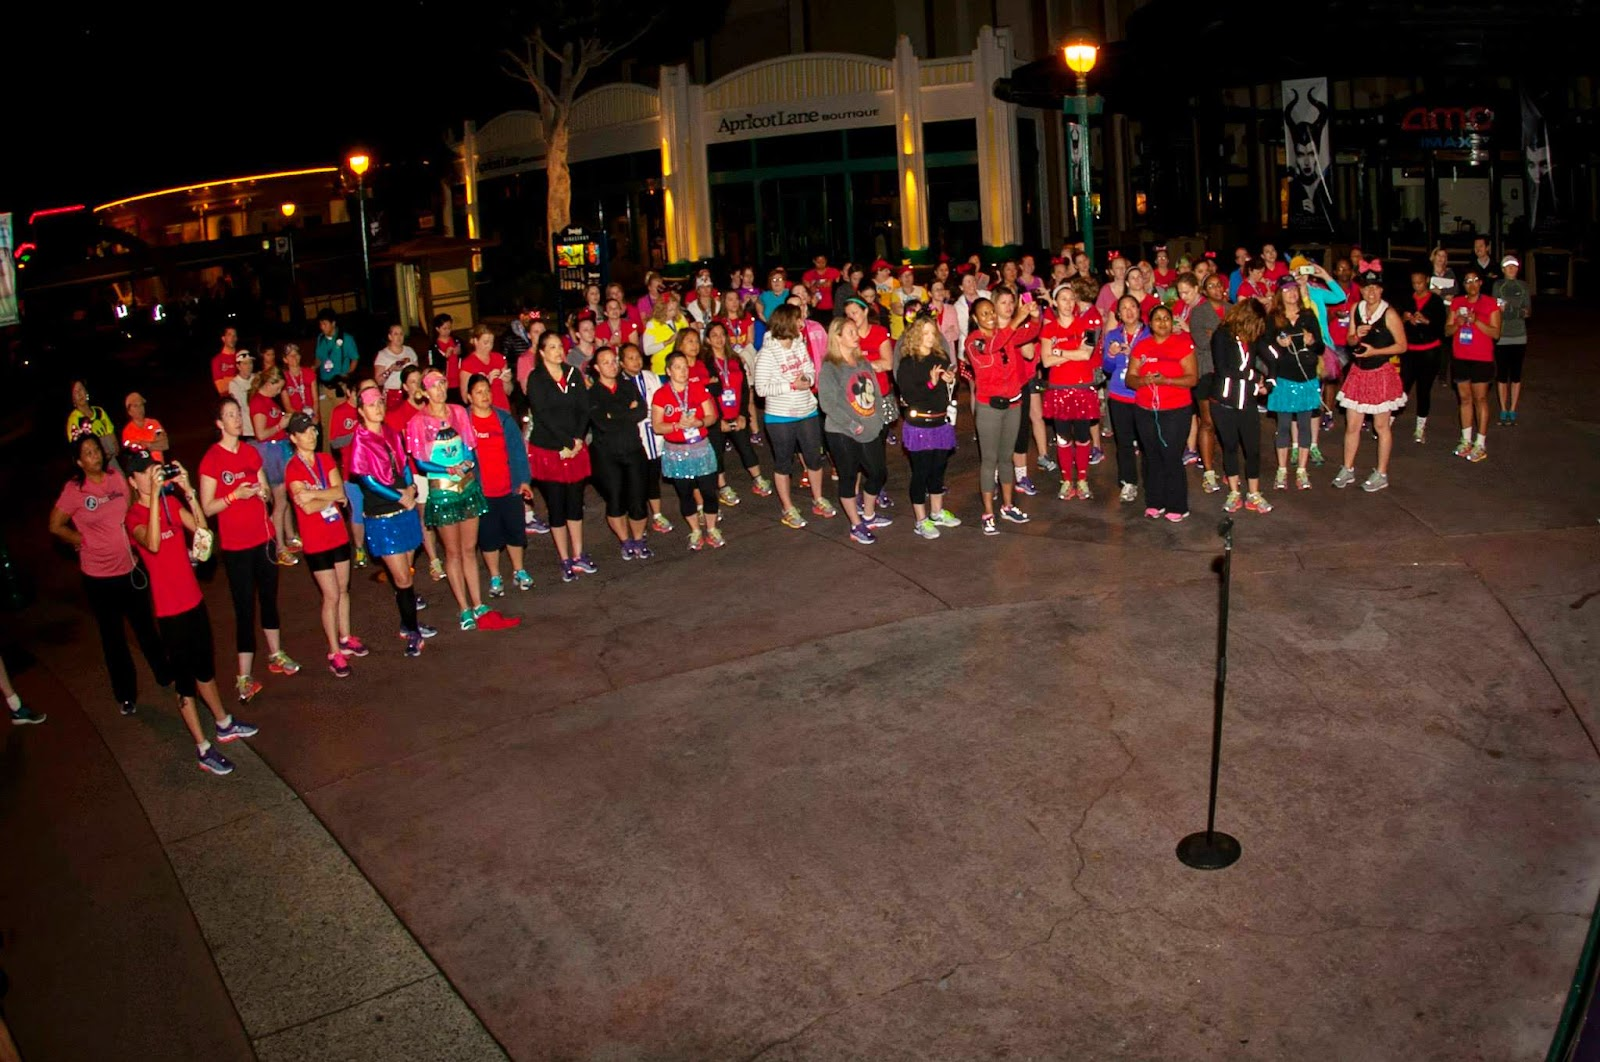 runDisney fun run at Disney Social Media Moms 2014